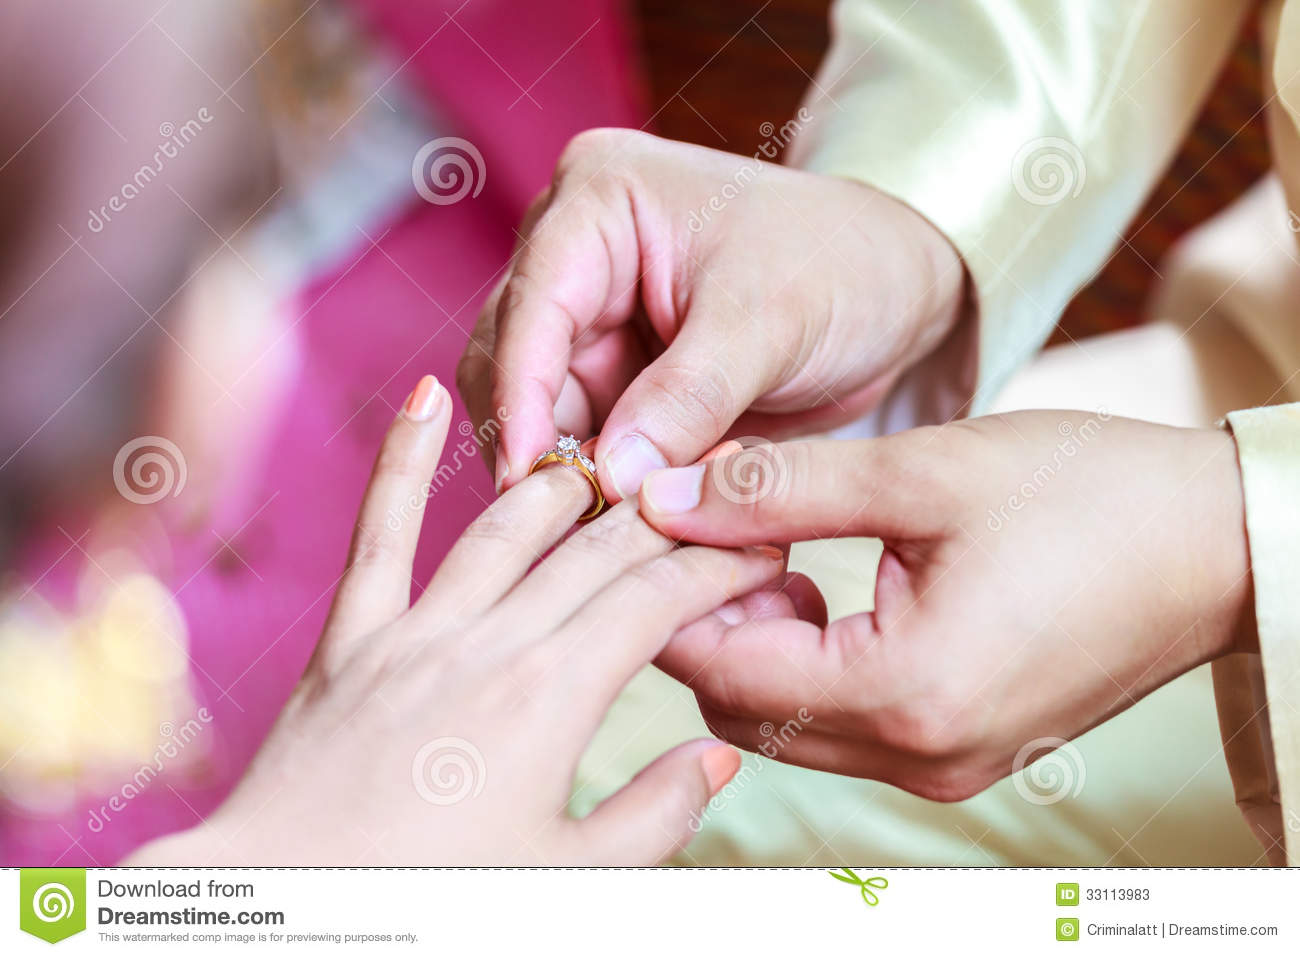 Groom Wearing Ring On Bride\'s Finger Stock Image - Image of together ...